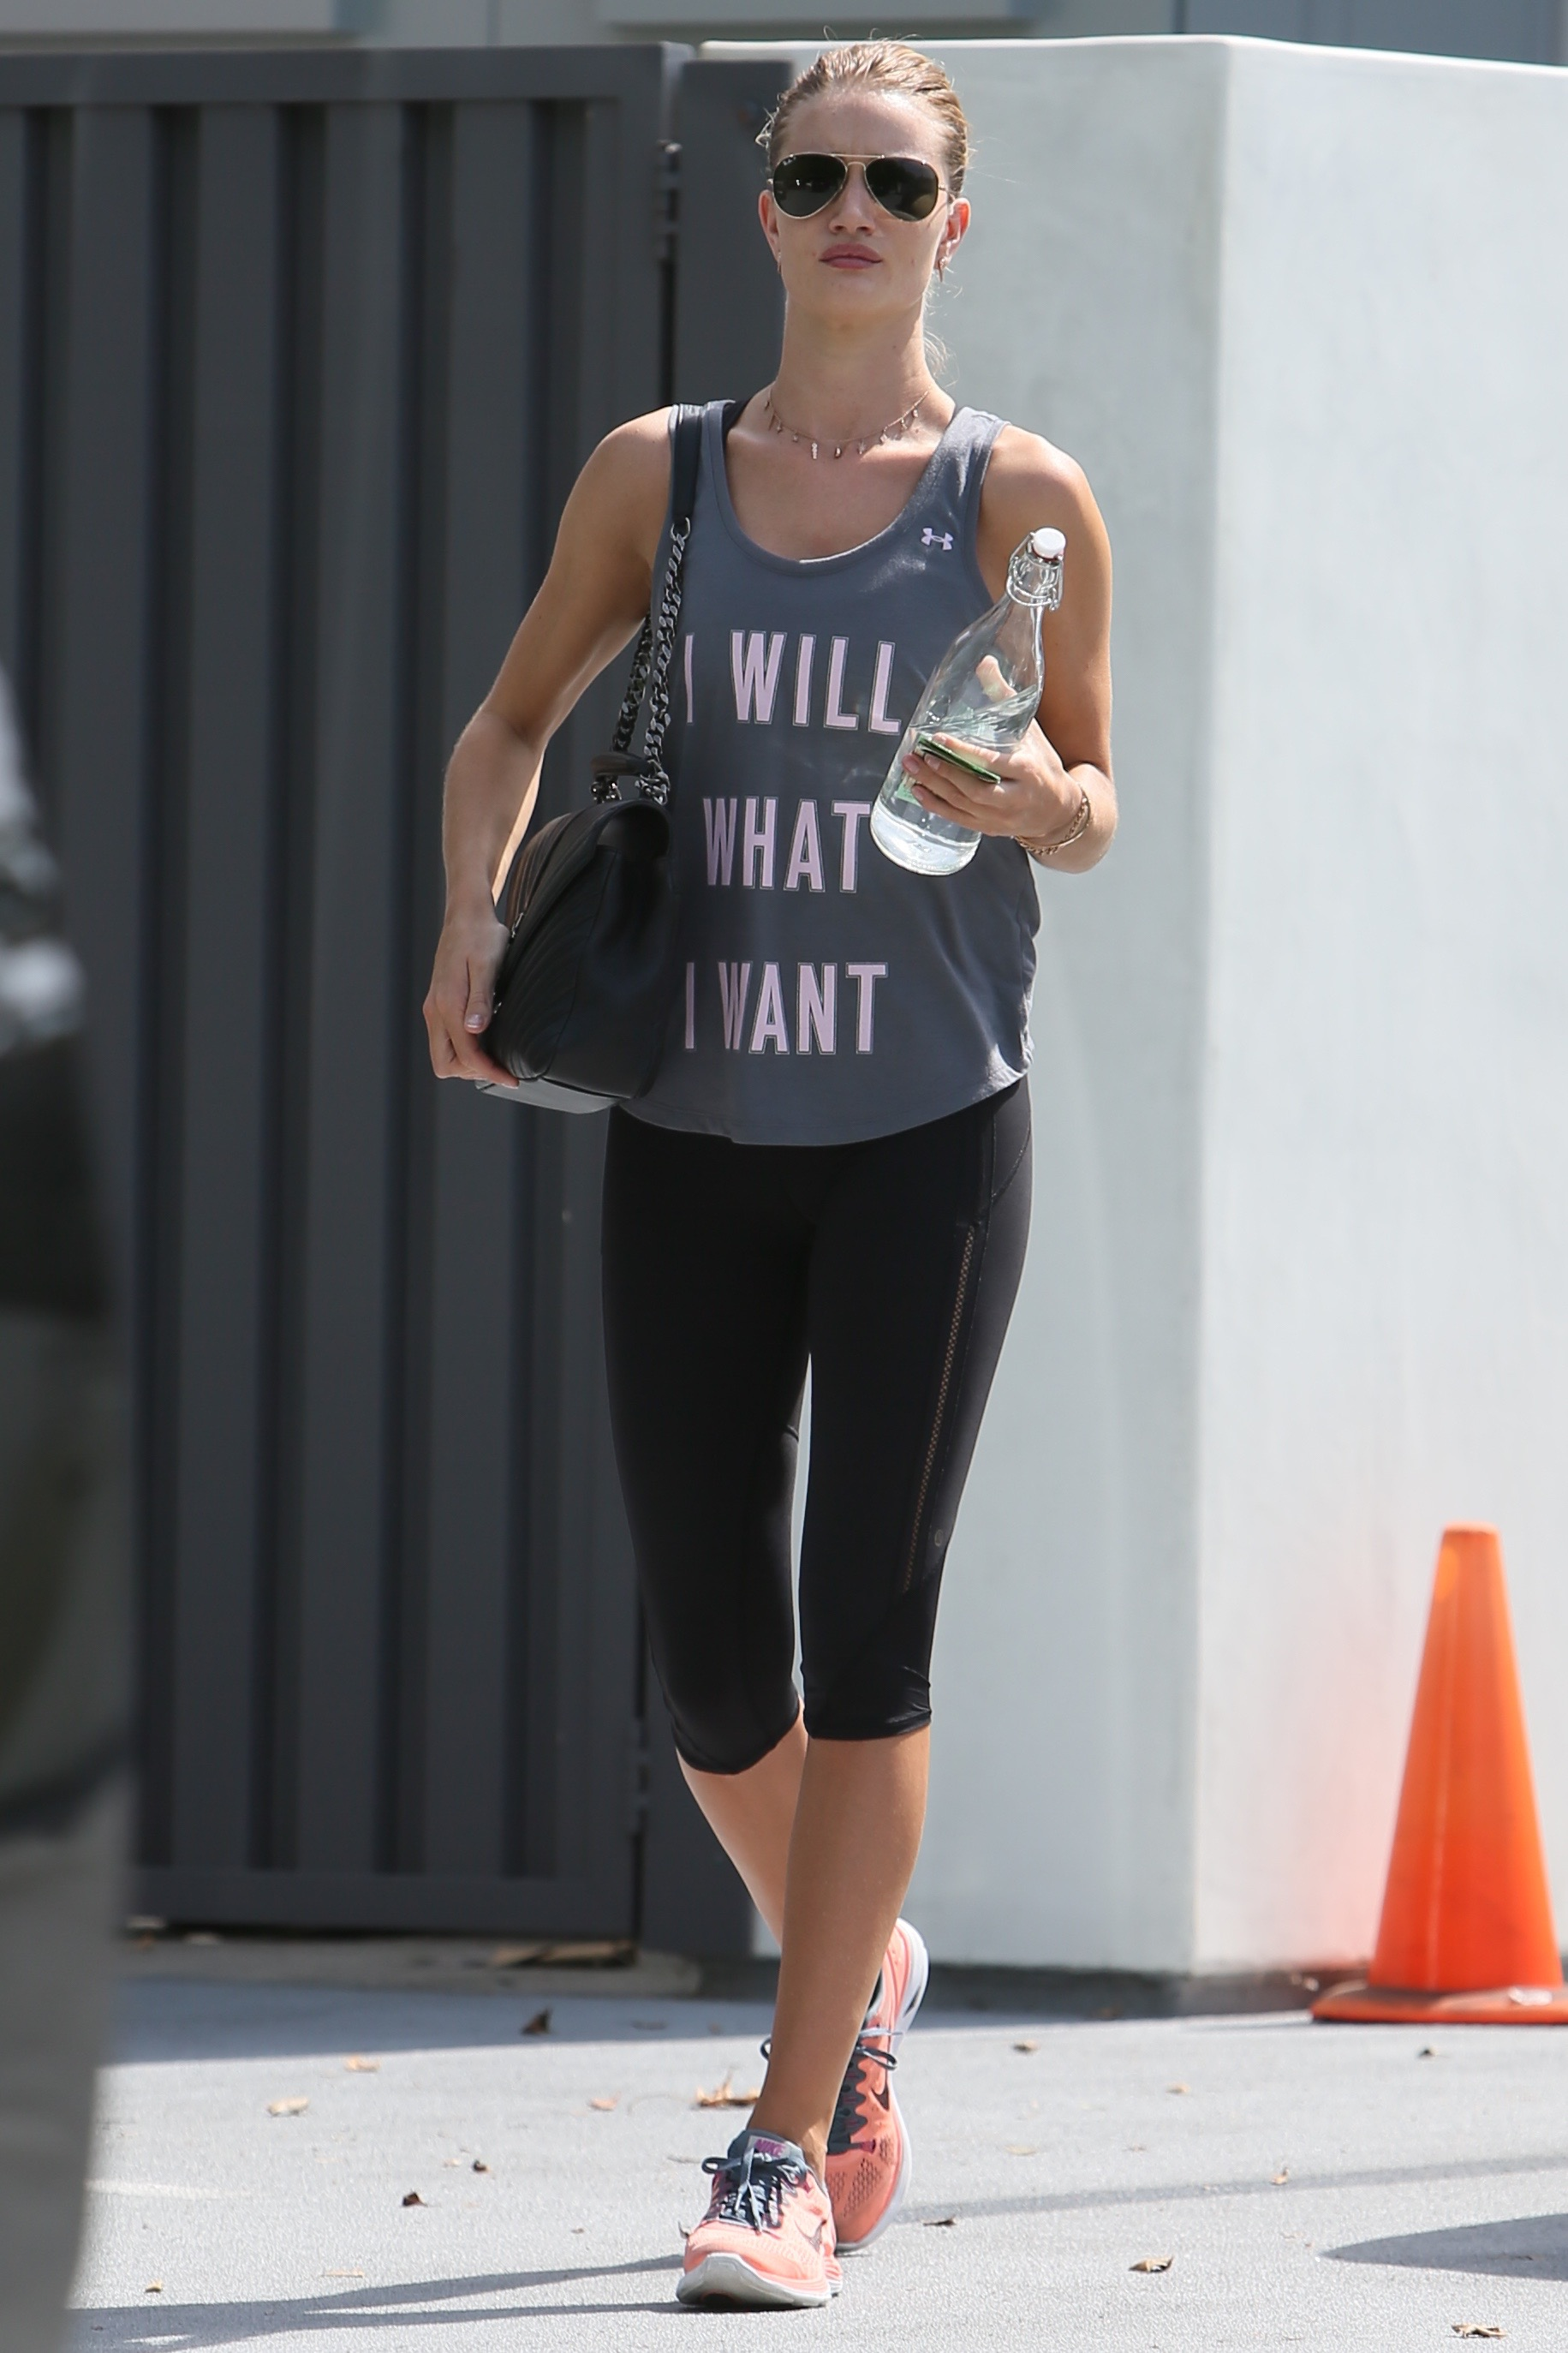 Rosie Huntington Whitley seen leaving Yoga                                    Featuring: Rosie Huntington-Whiteley                  Where: Los Angeles, California, United States                  When: 21 Sep 2015                  Credit: Michael Wright/WENN.com